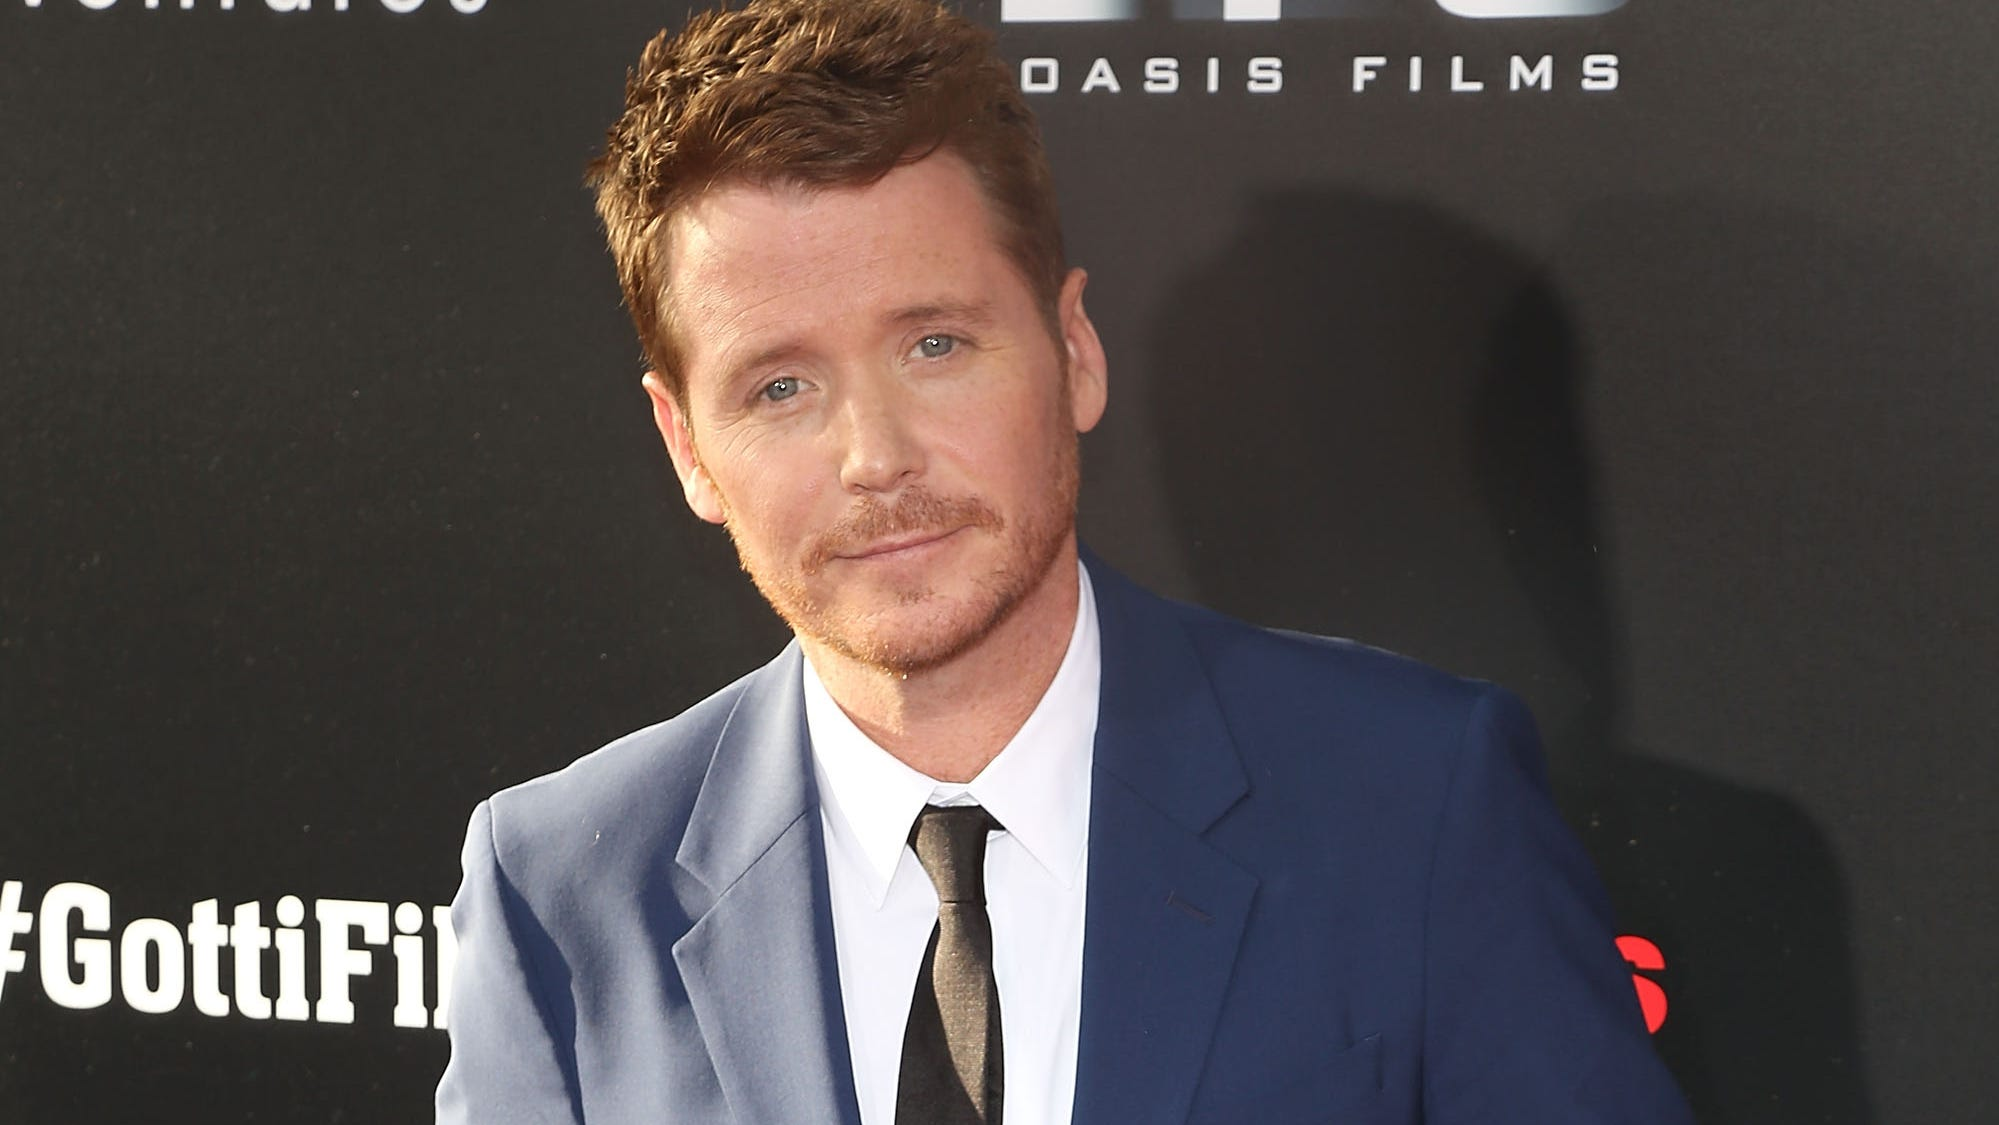 'Entourage' star Kevin Connolly says newborn daughter hospitalized with COVID-19: 'It's been hard'